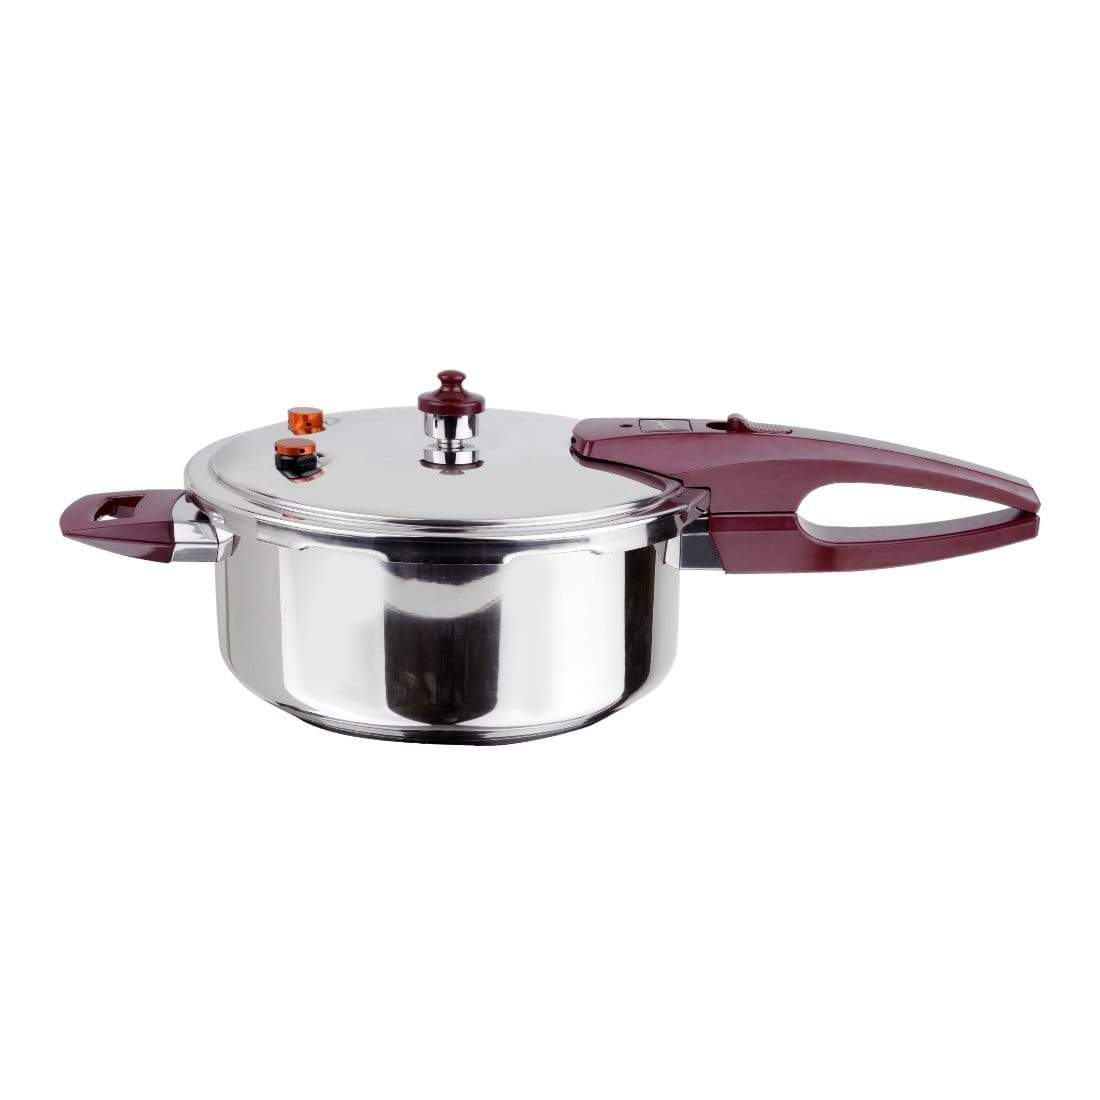 Wonderchef Secura 5 Pressure Cooker 3 Litre